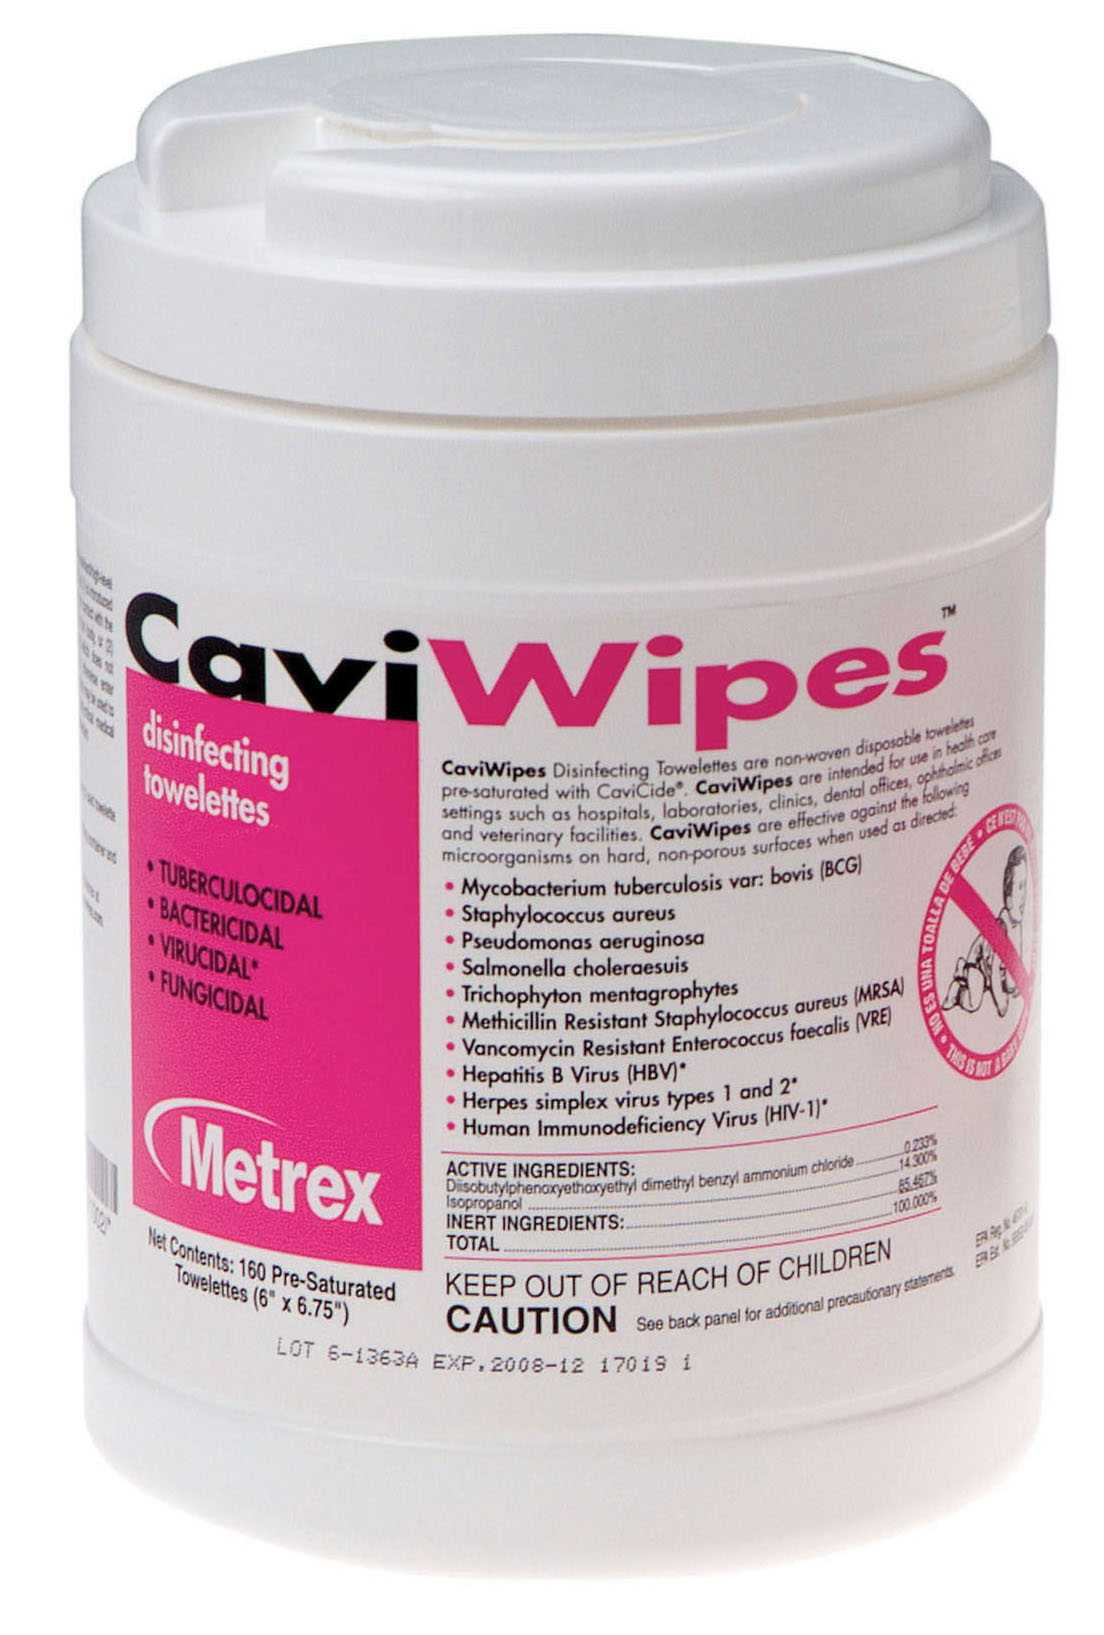 Metrex CaviWipes Surface Disinfectant Towelettes Item 13-1100